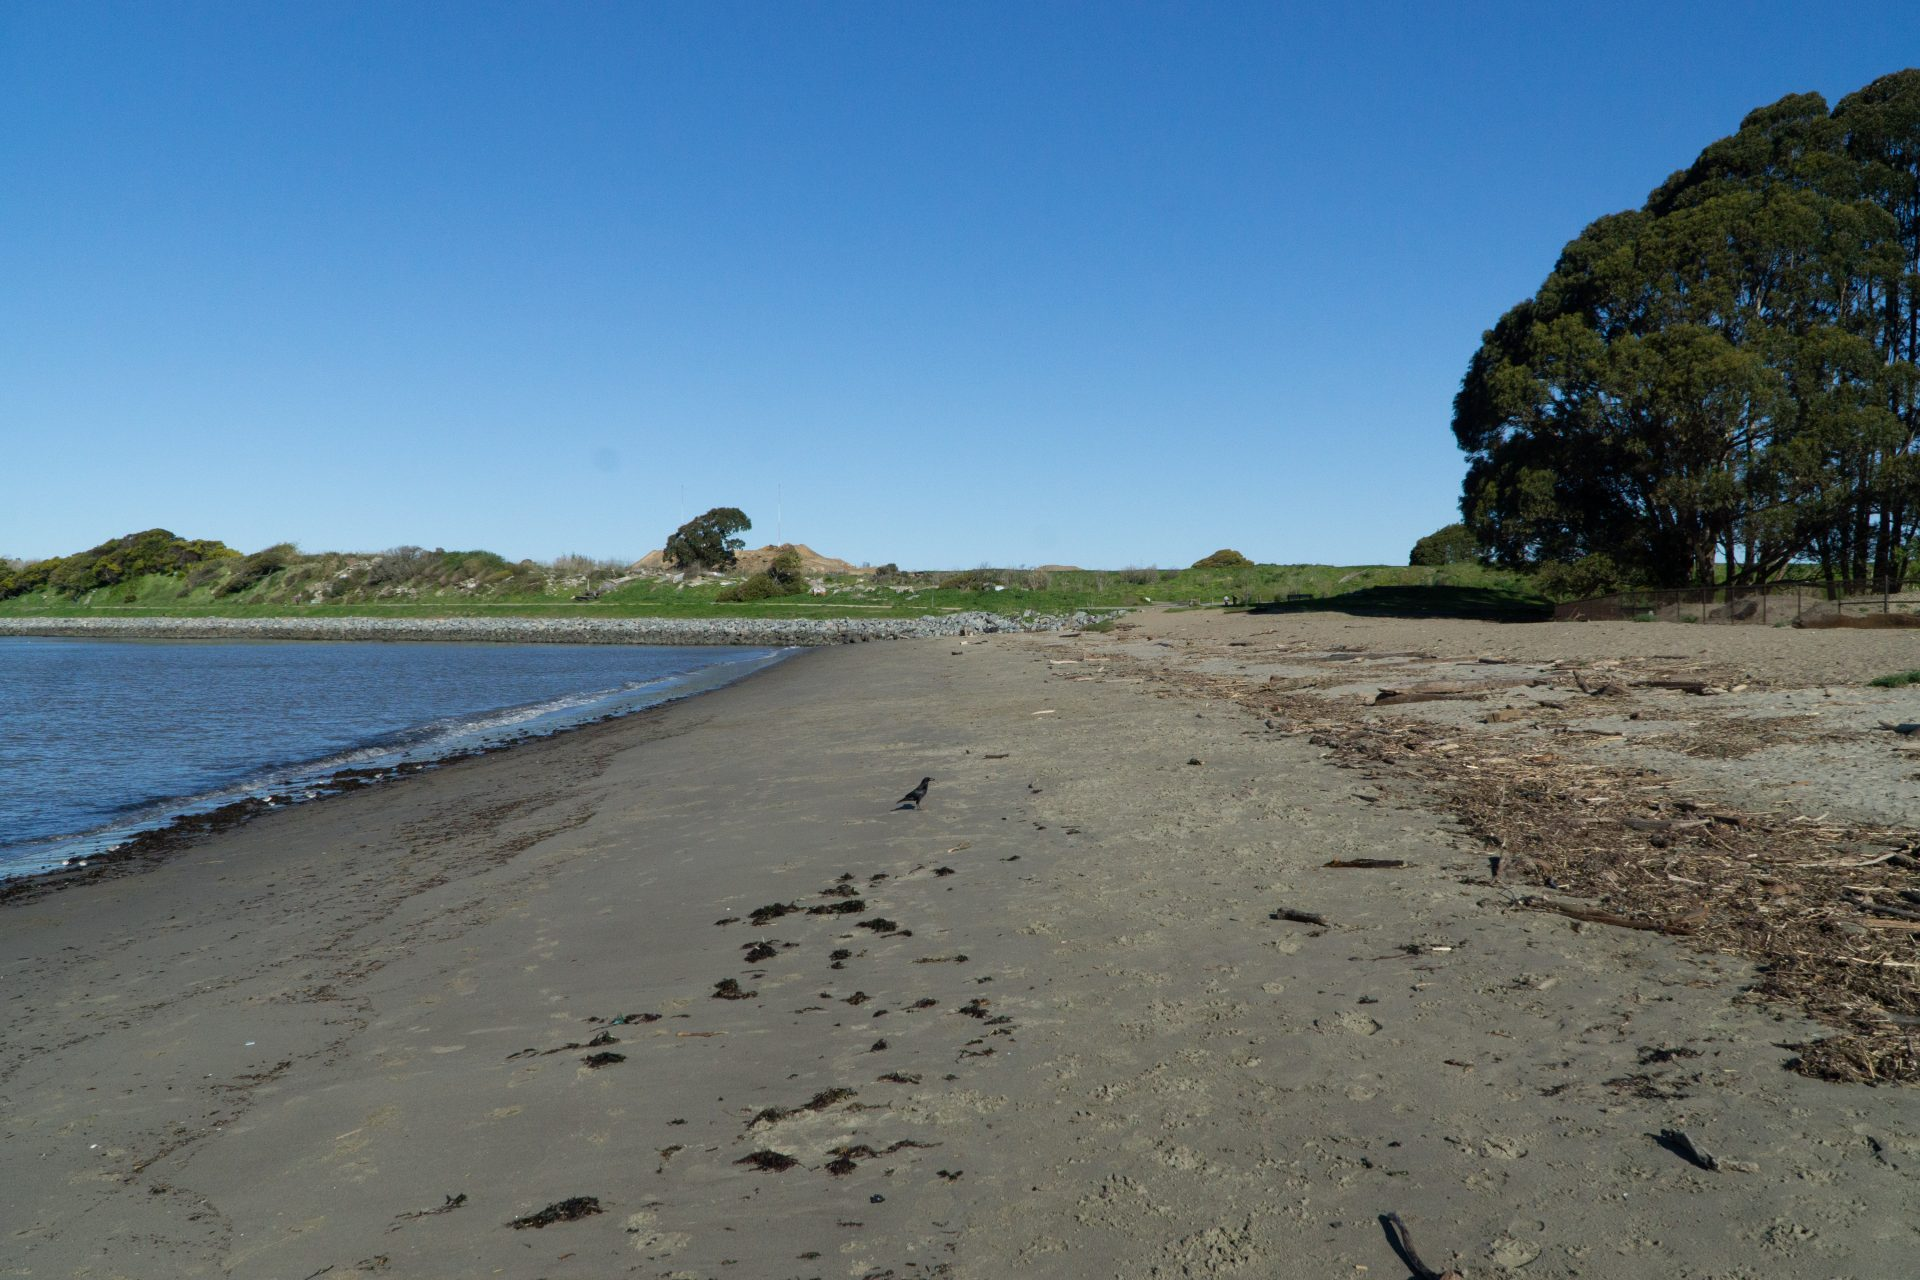 dark gray sandy beach, bay on left and grassy meadow beyond